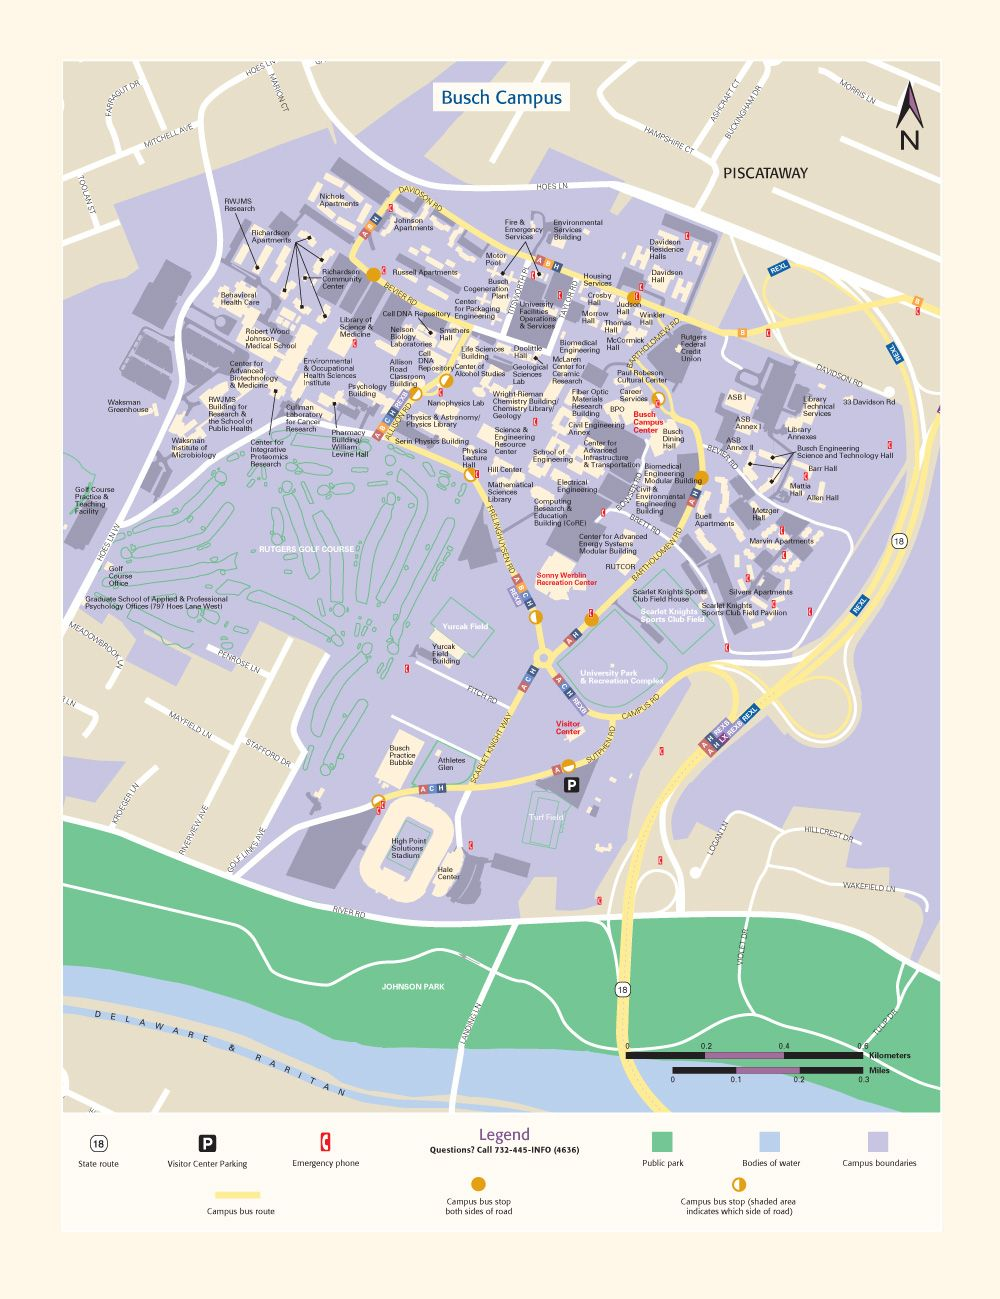 Rutgers University Busch Campus Map New York Metropolitan Area